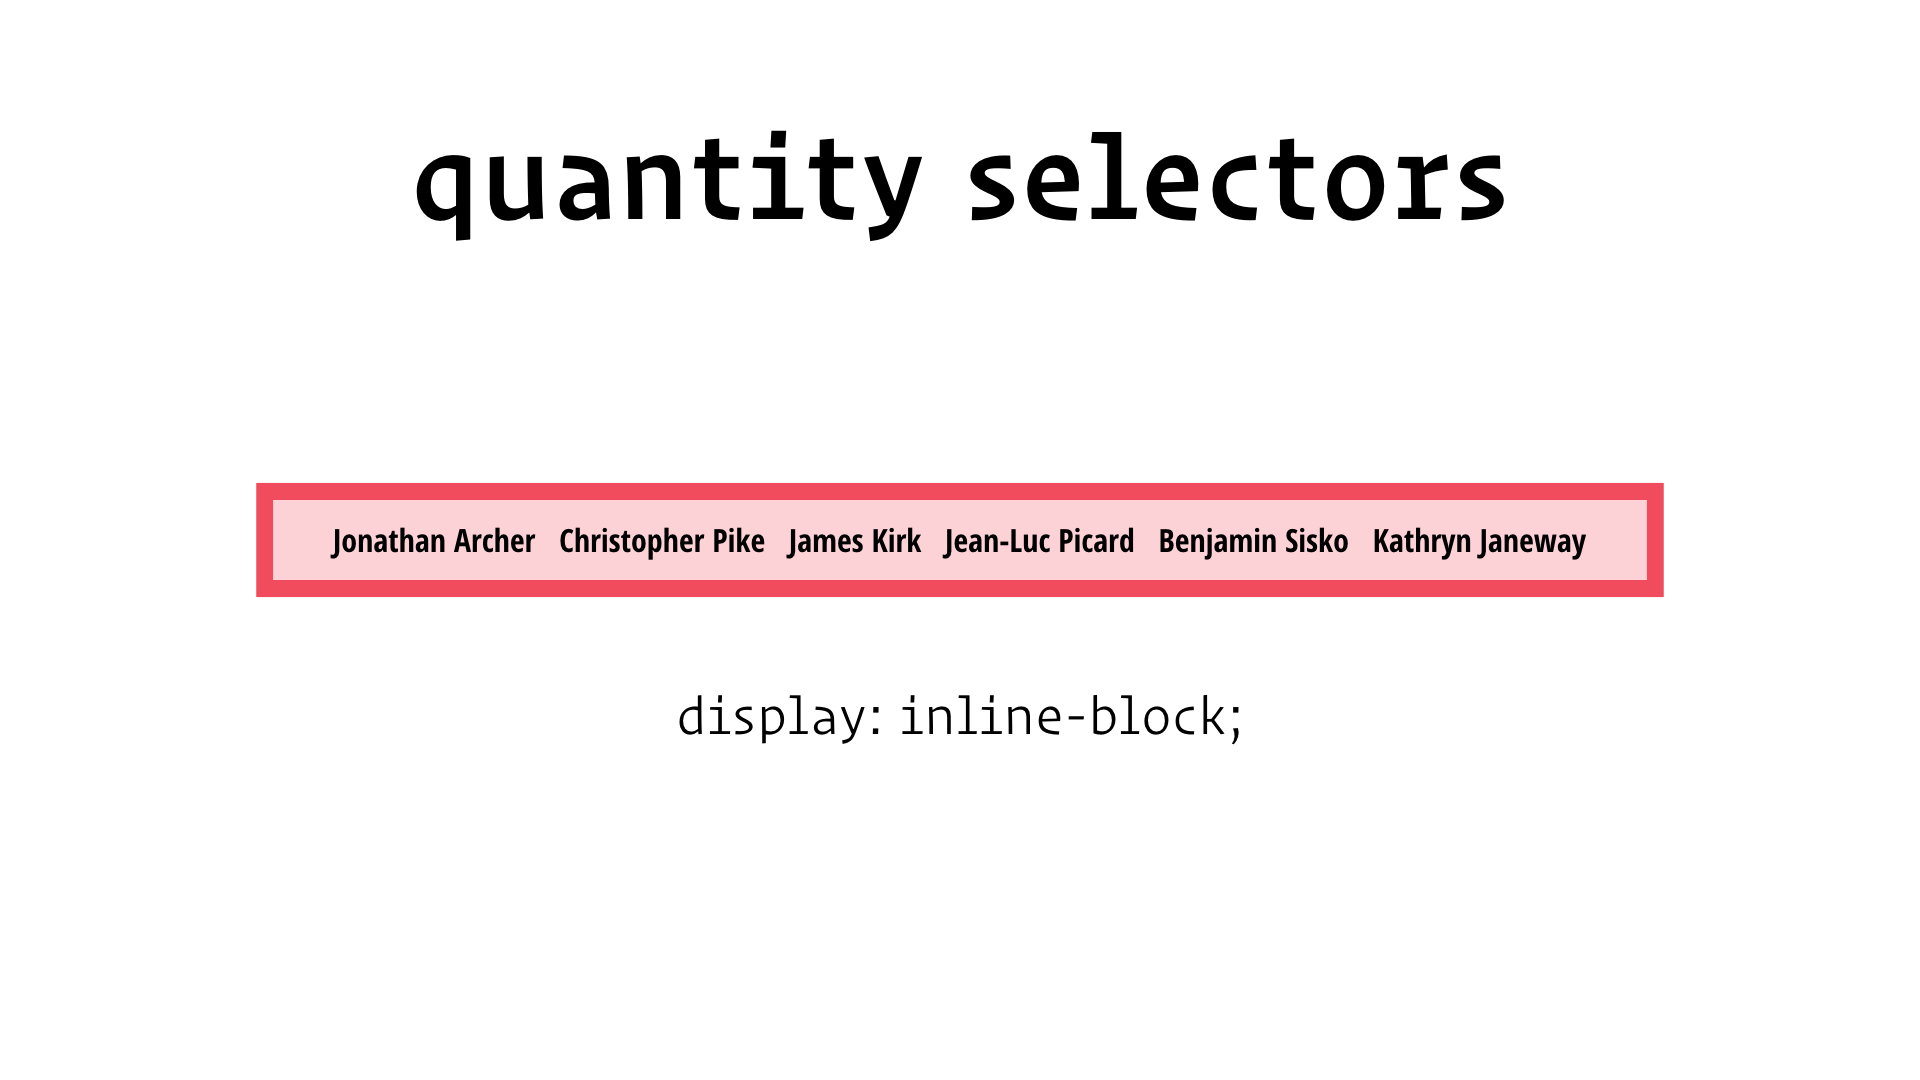 display: inline-block;